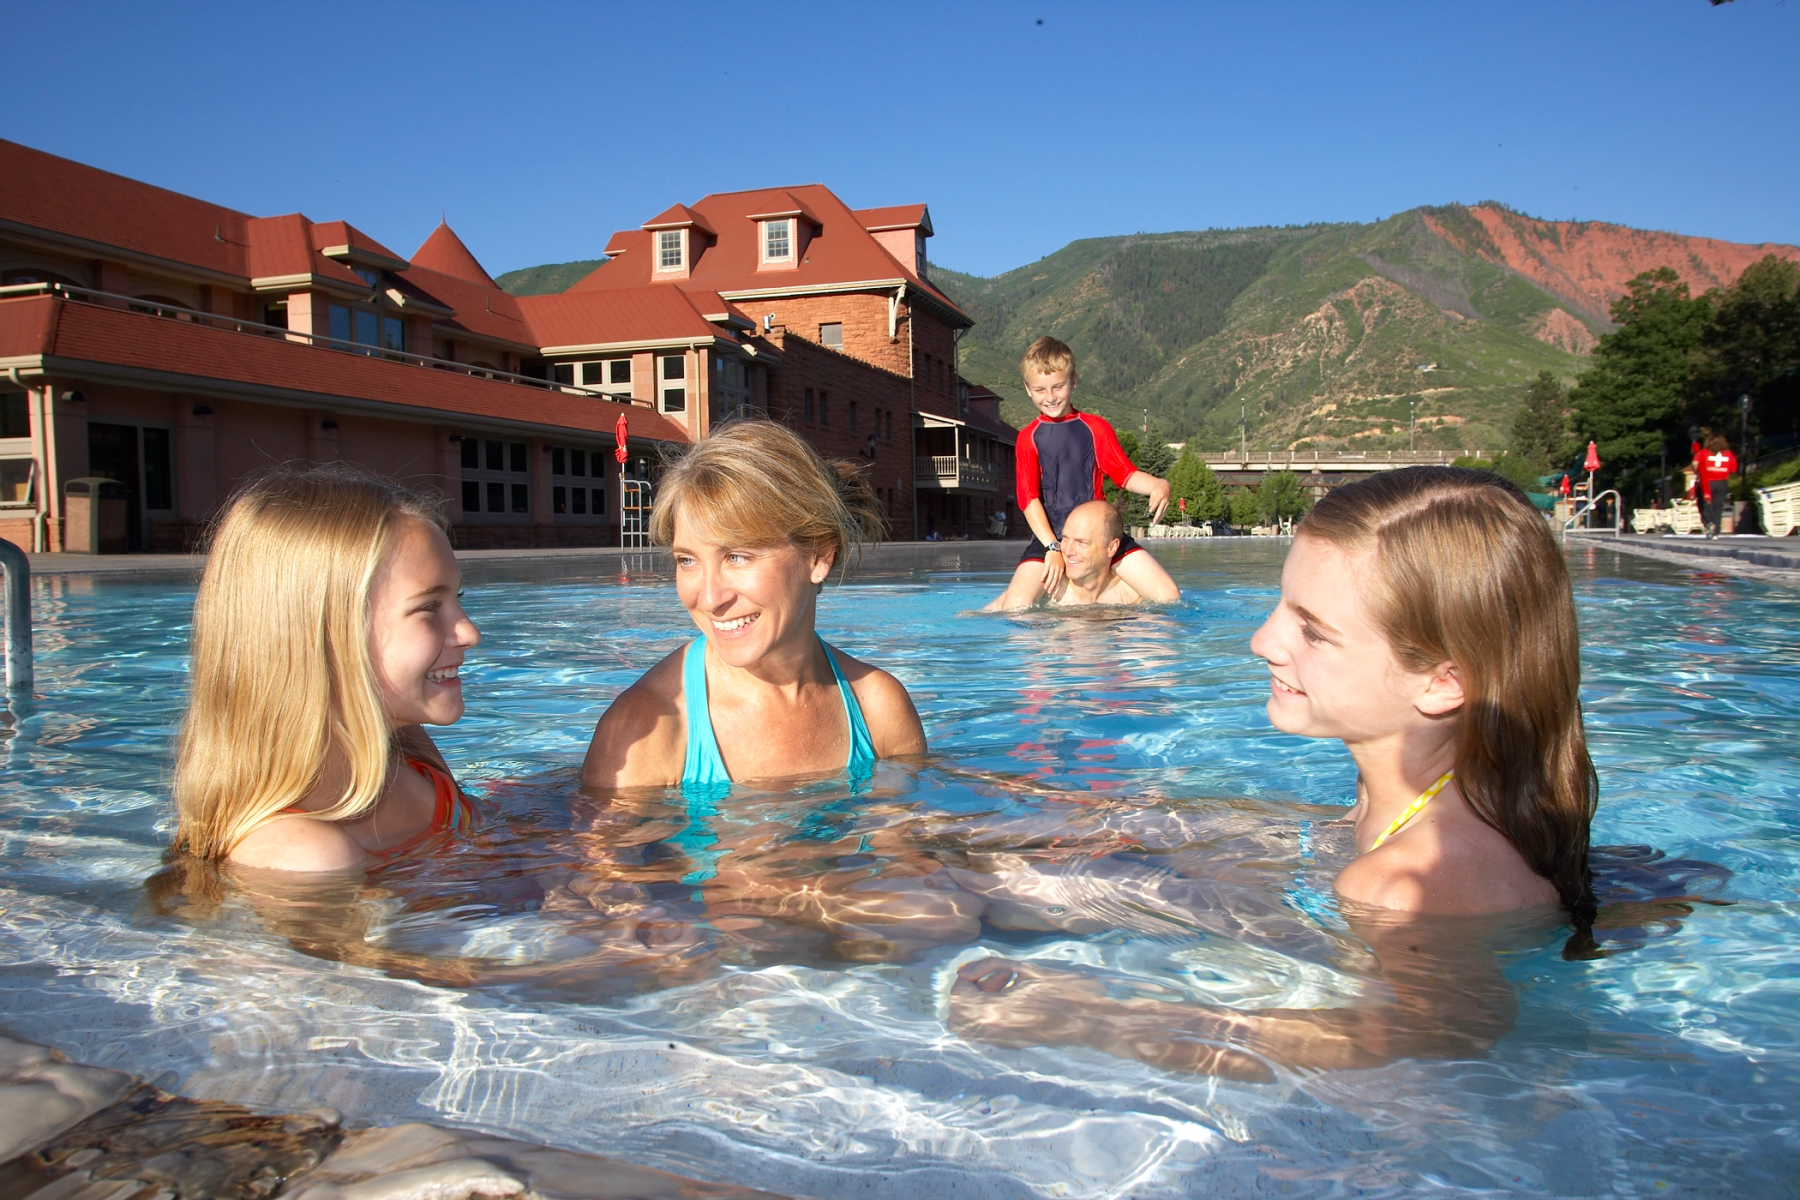 spring mountain sex chat See what is happening in real time at the hot springs pool in glenwood springs, colorado.